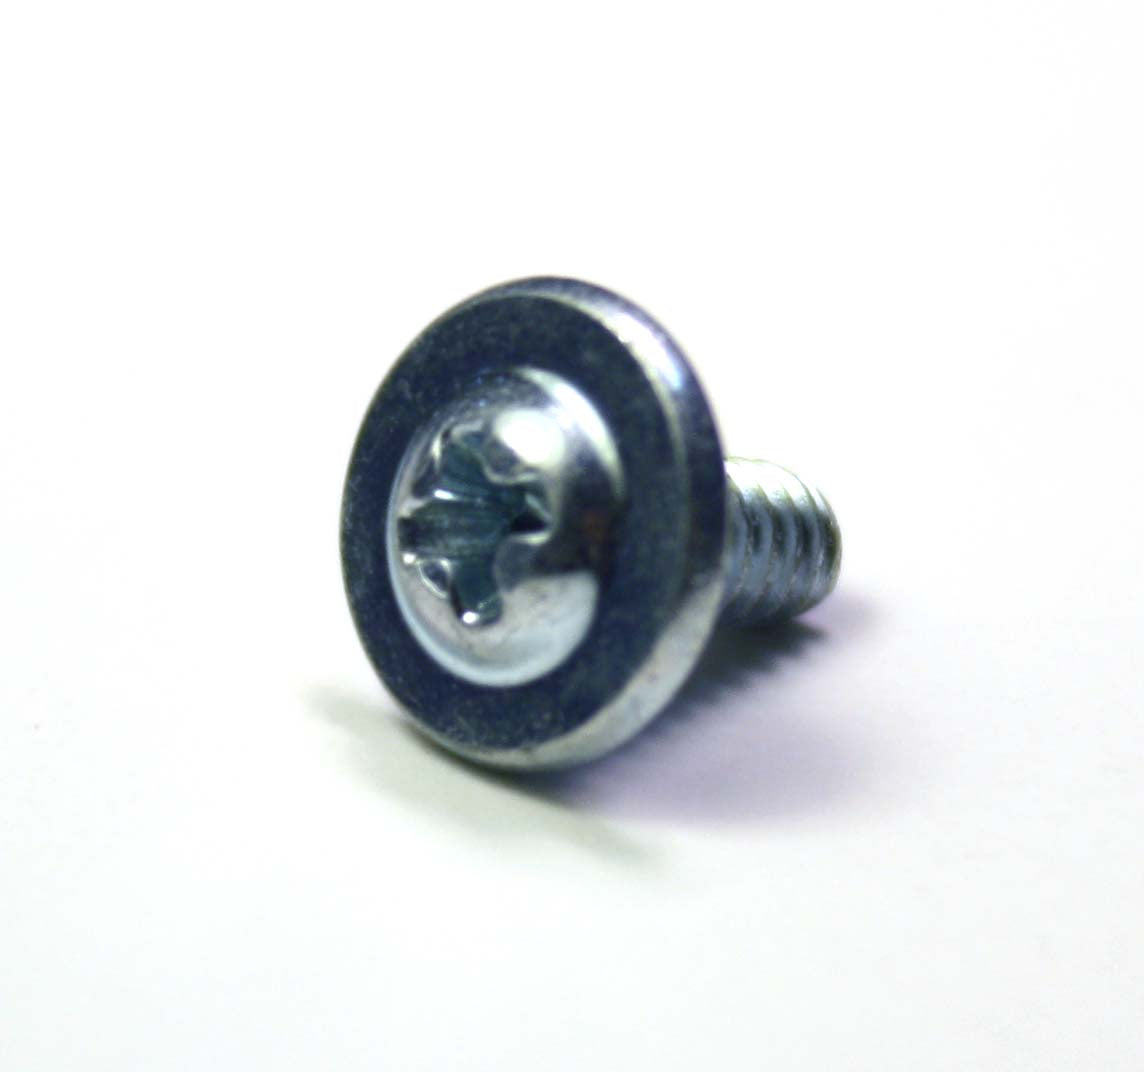 Philips Washer Screw